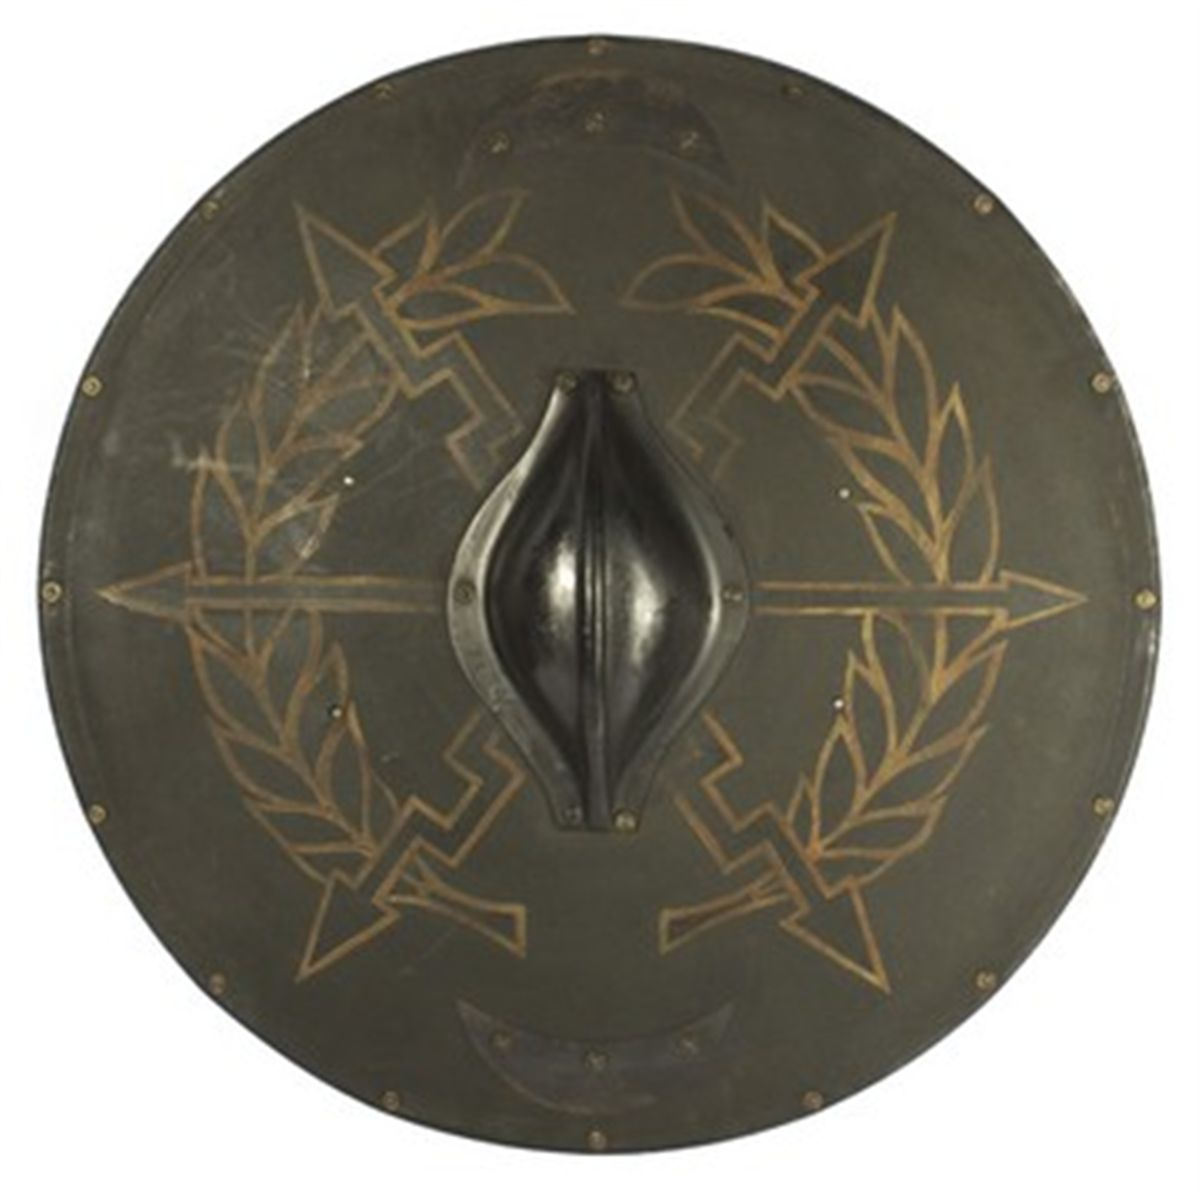 prop shield from gladiator